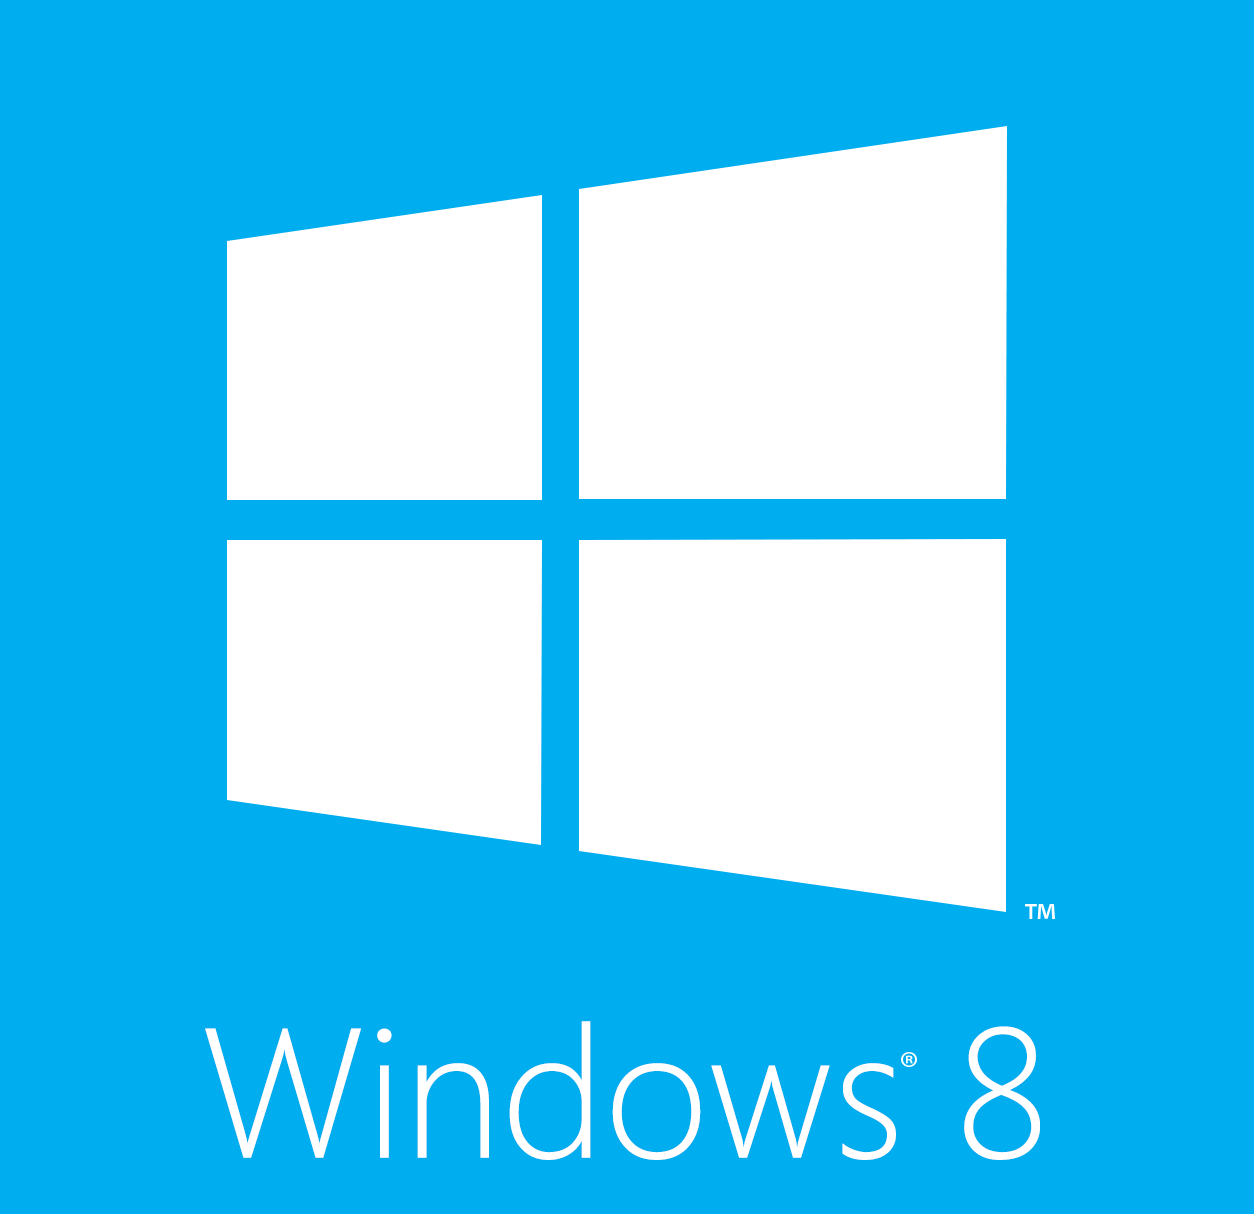 Windows 8 tutorial 4 searching in windows 8 top for Microsoft windows windows